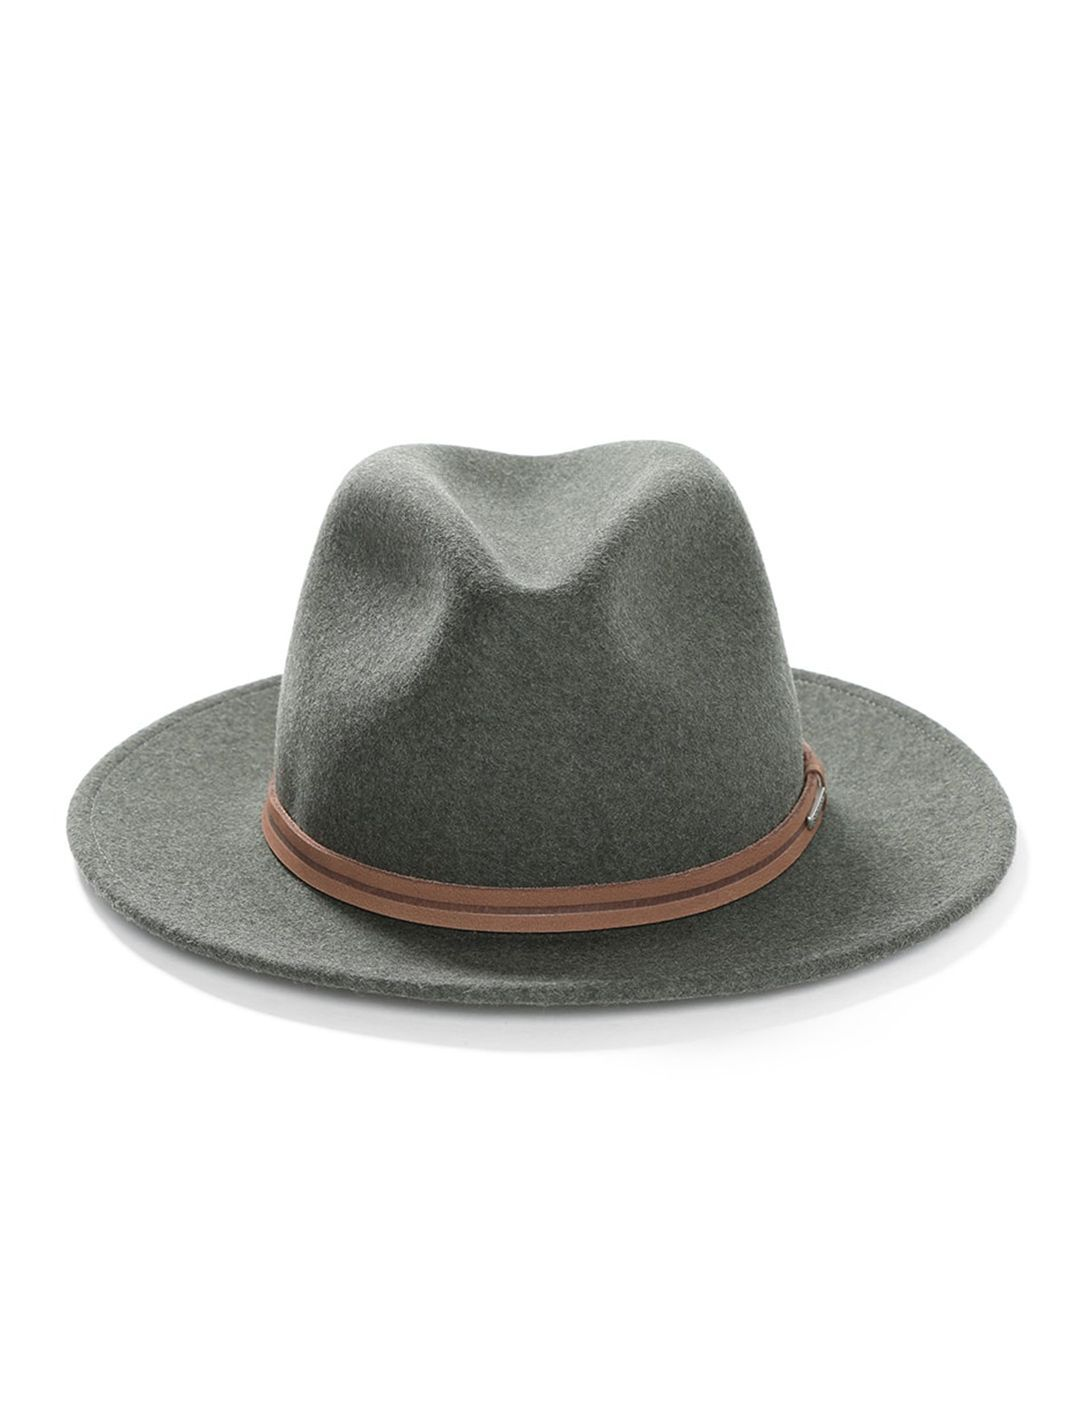 6dd3da141e1 Stetson Men s EXPLORER OUTDOOR HAT TWEXPR-042